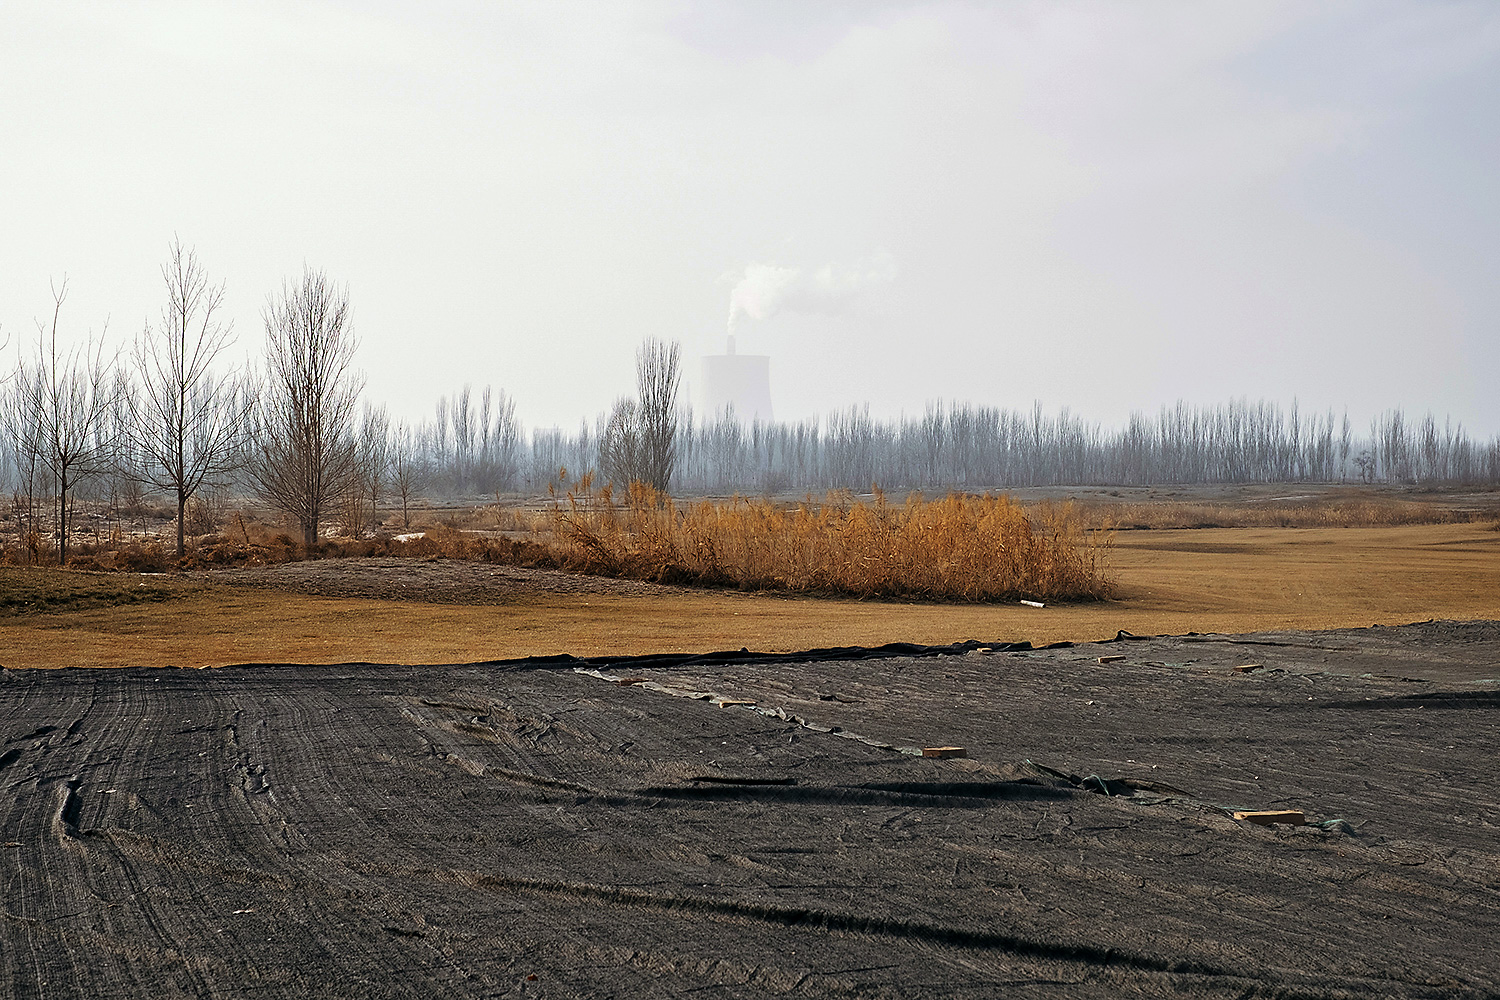 Once arable farmland, this area in the Kashgar suburbs has been converted to accommodate enterprises like this golf course, funded by a Beijing-based company.